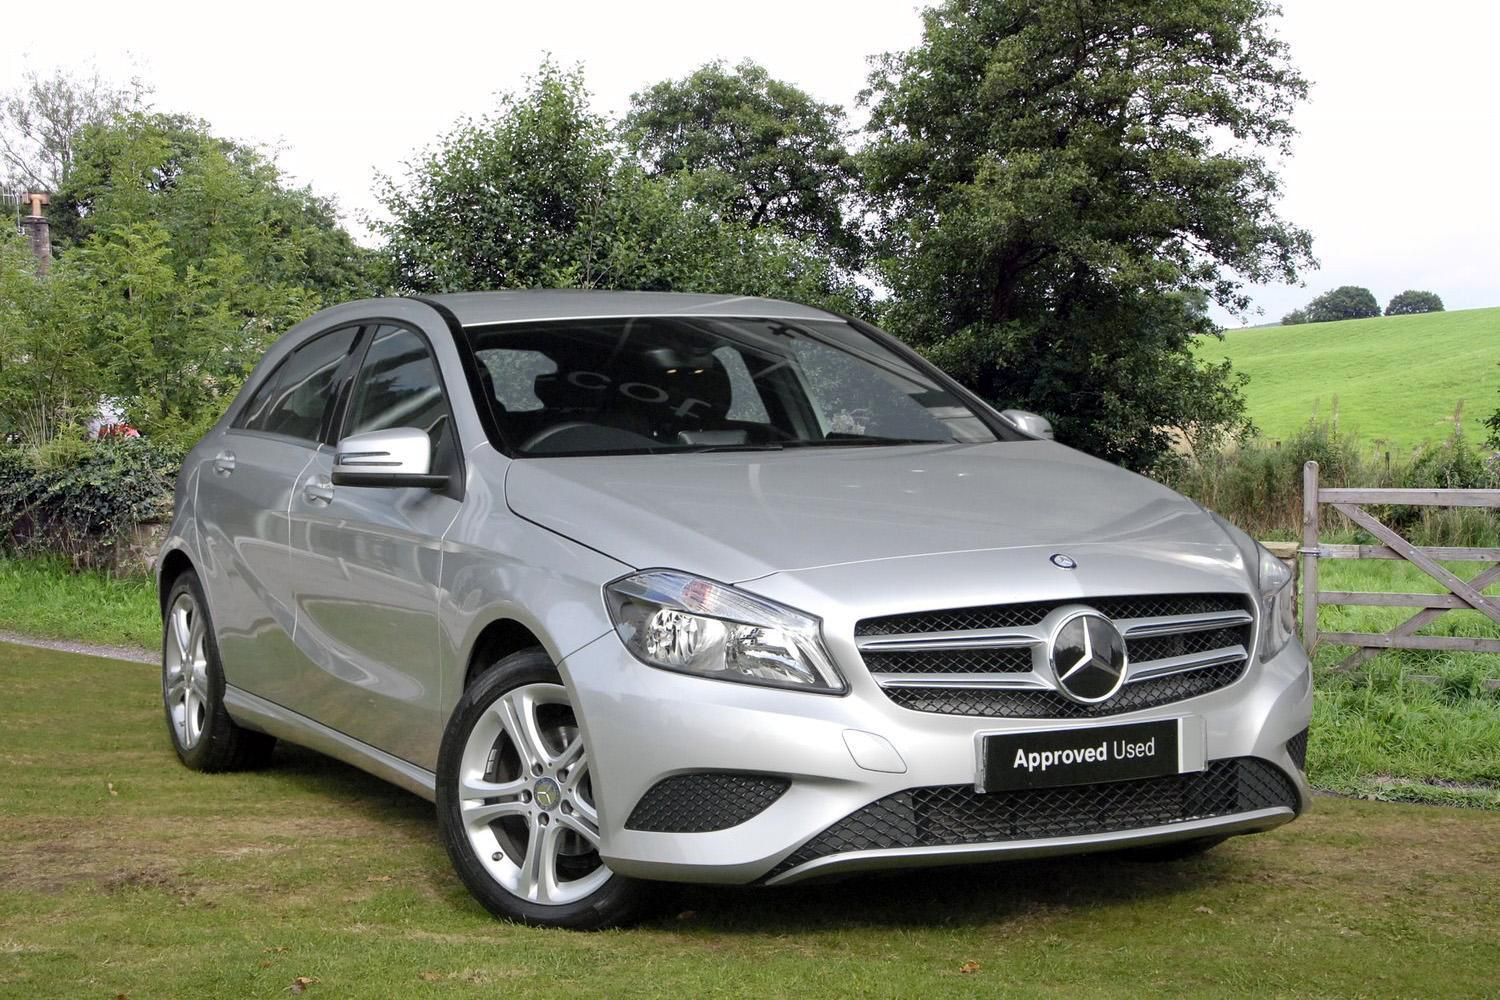 used mercedes benz a class a180 cdi sport edition 5dr diesel hatchback for sale vertu mercedes. Black Bedroom Furniture Sets. Home Design Ideas